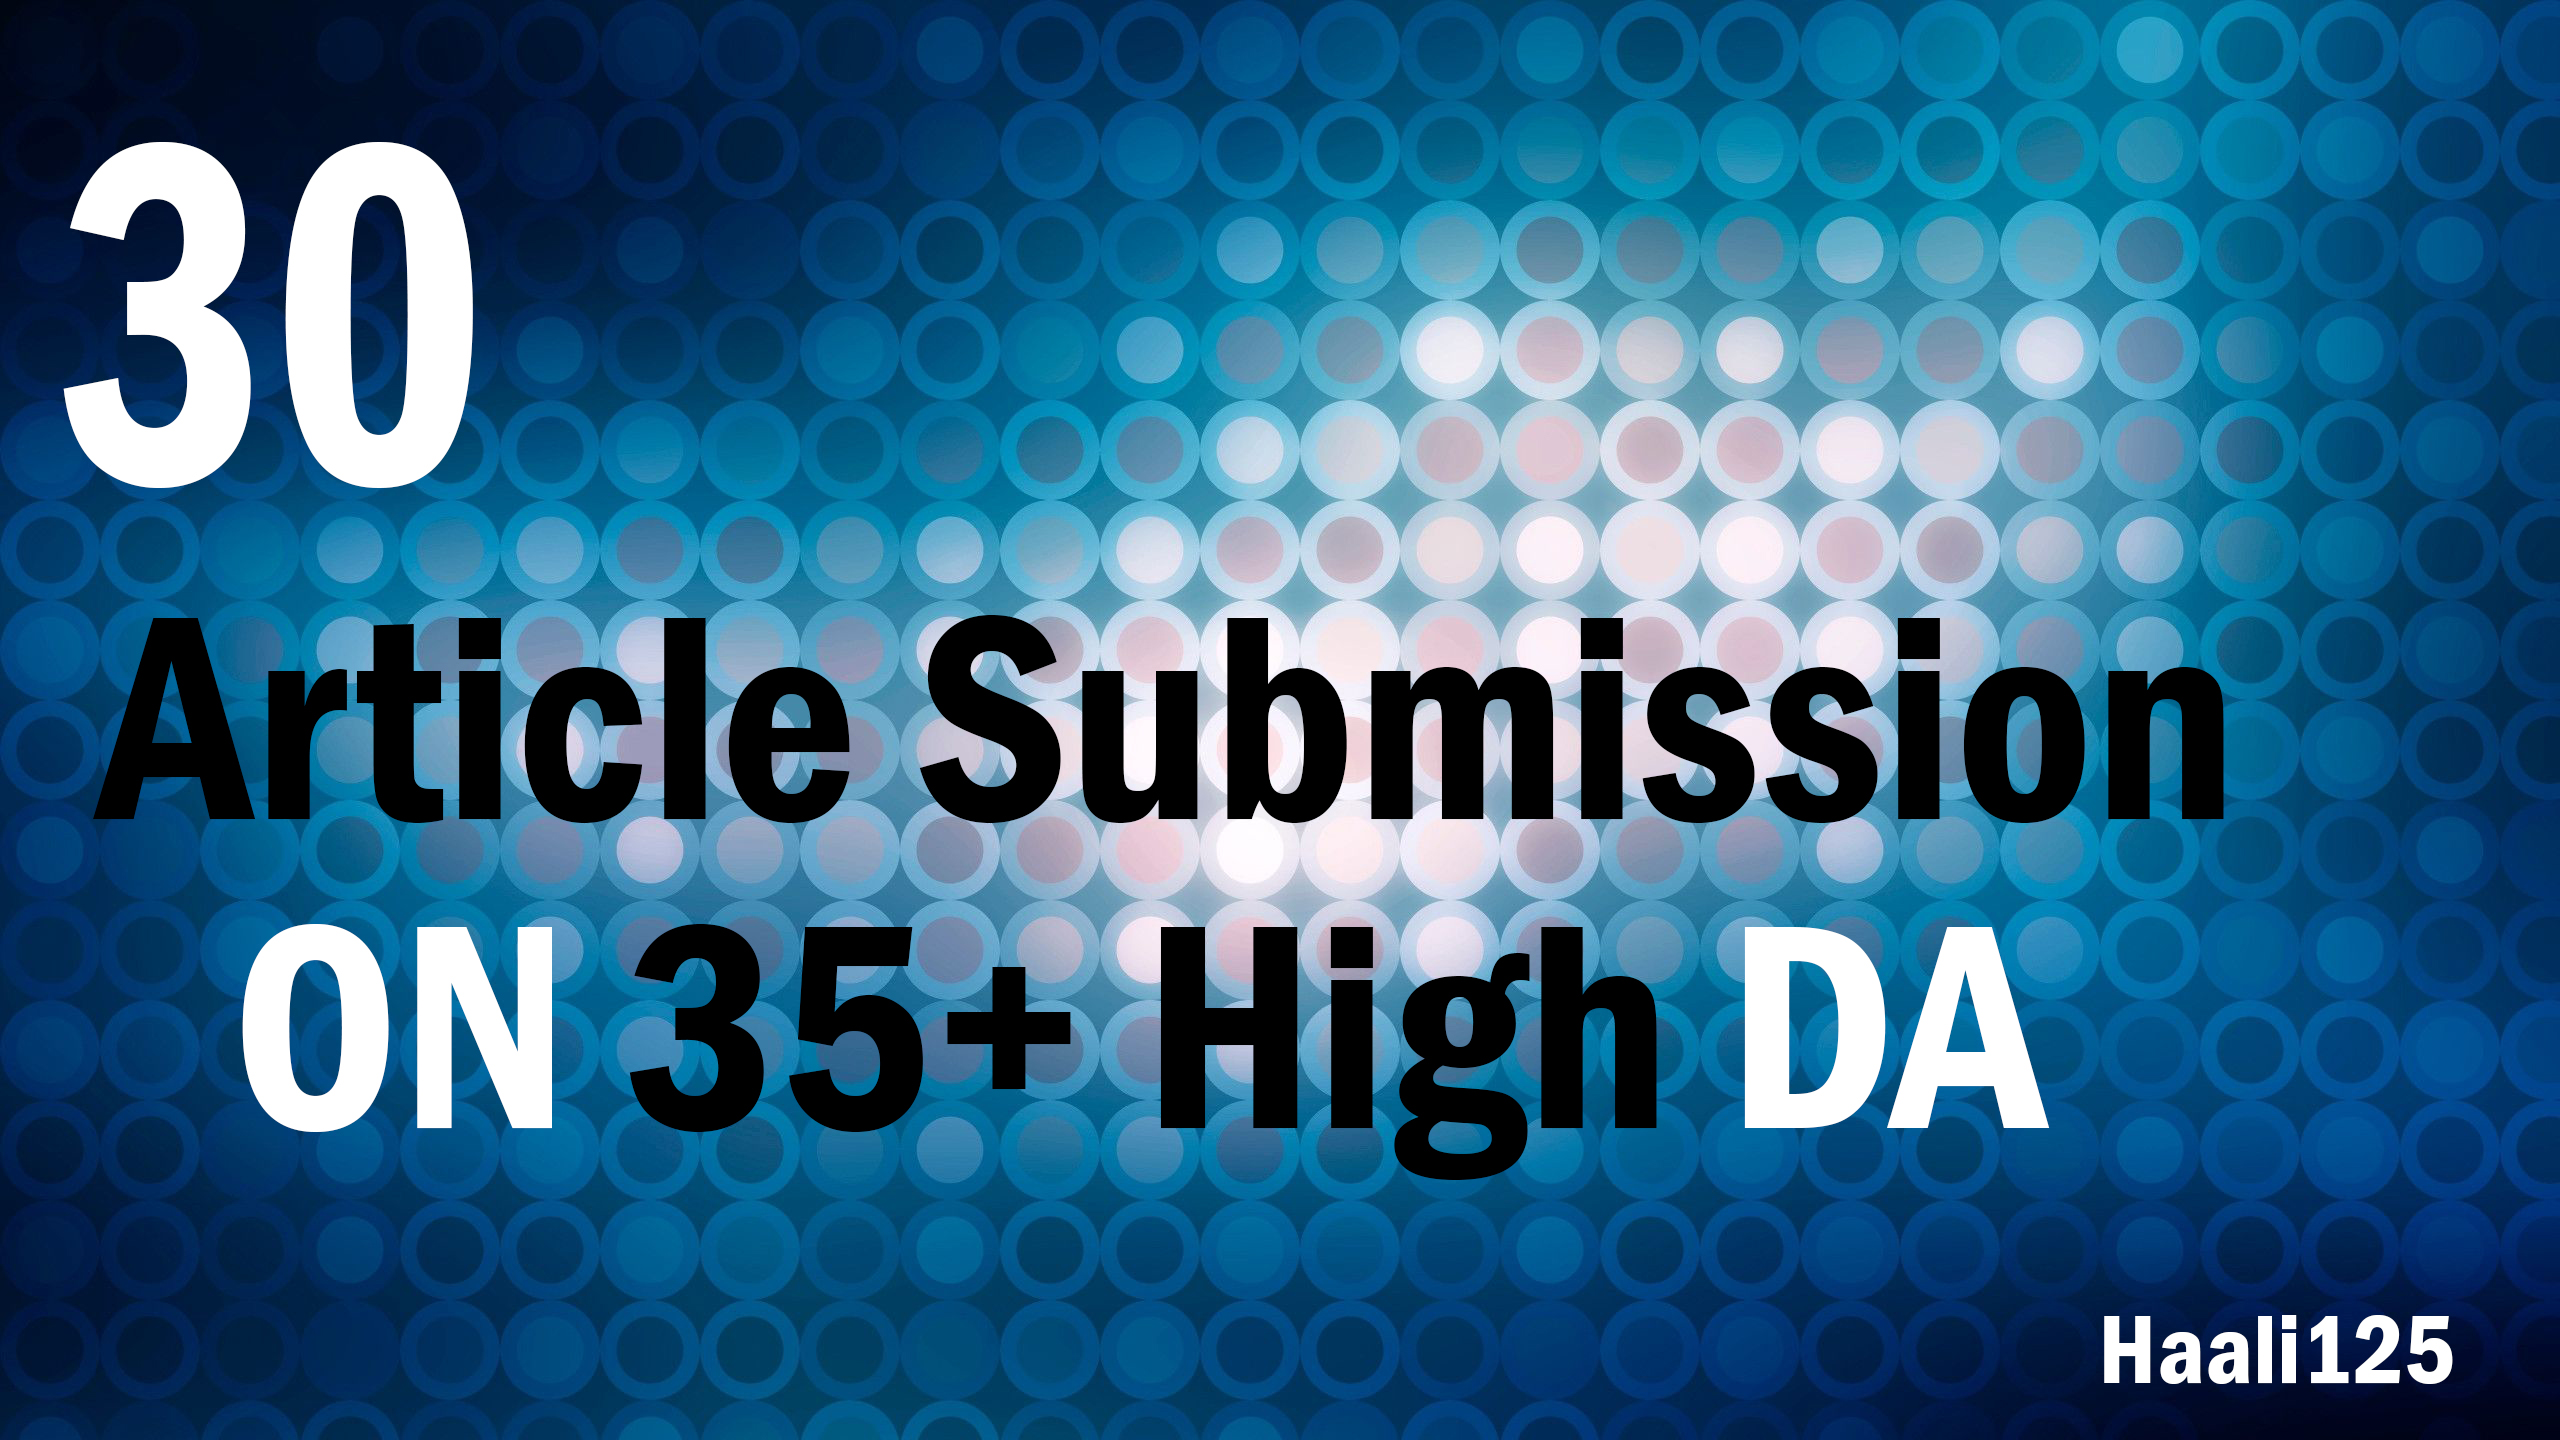 I will provide 30 article submission 35+ high DA